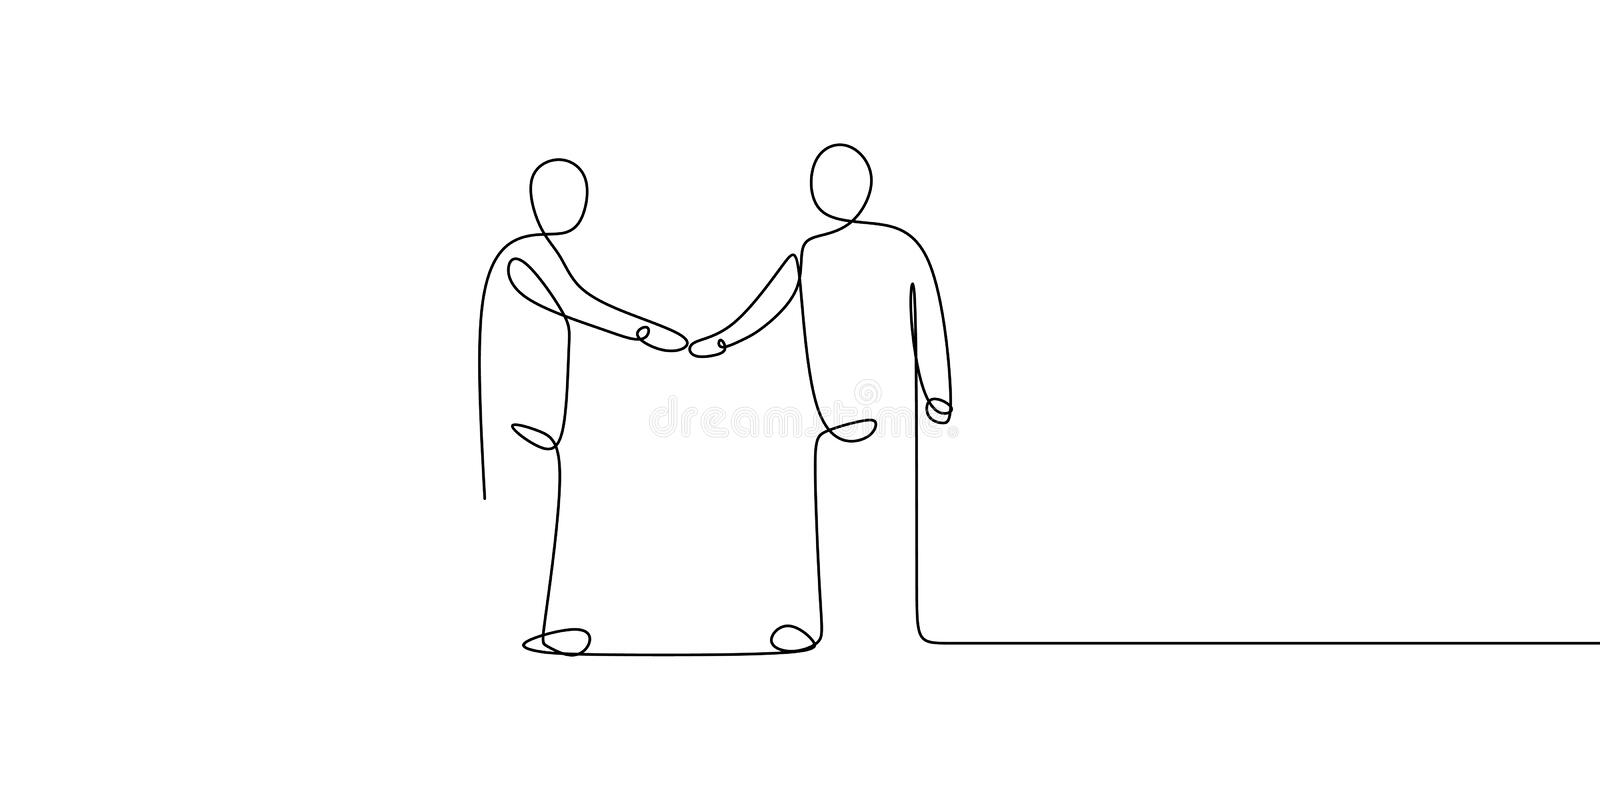 Business meeting concept. Continuous line art drawing of people community with shaking hands vector illustration. Teamwork man outline success isolated walking vector illustration